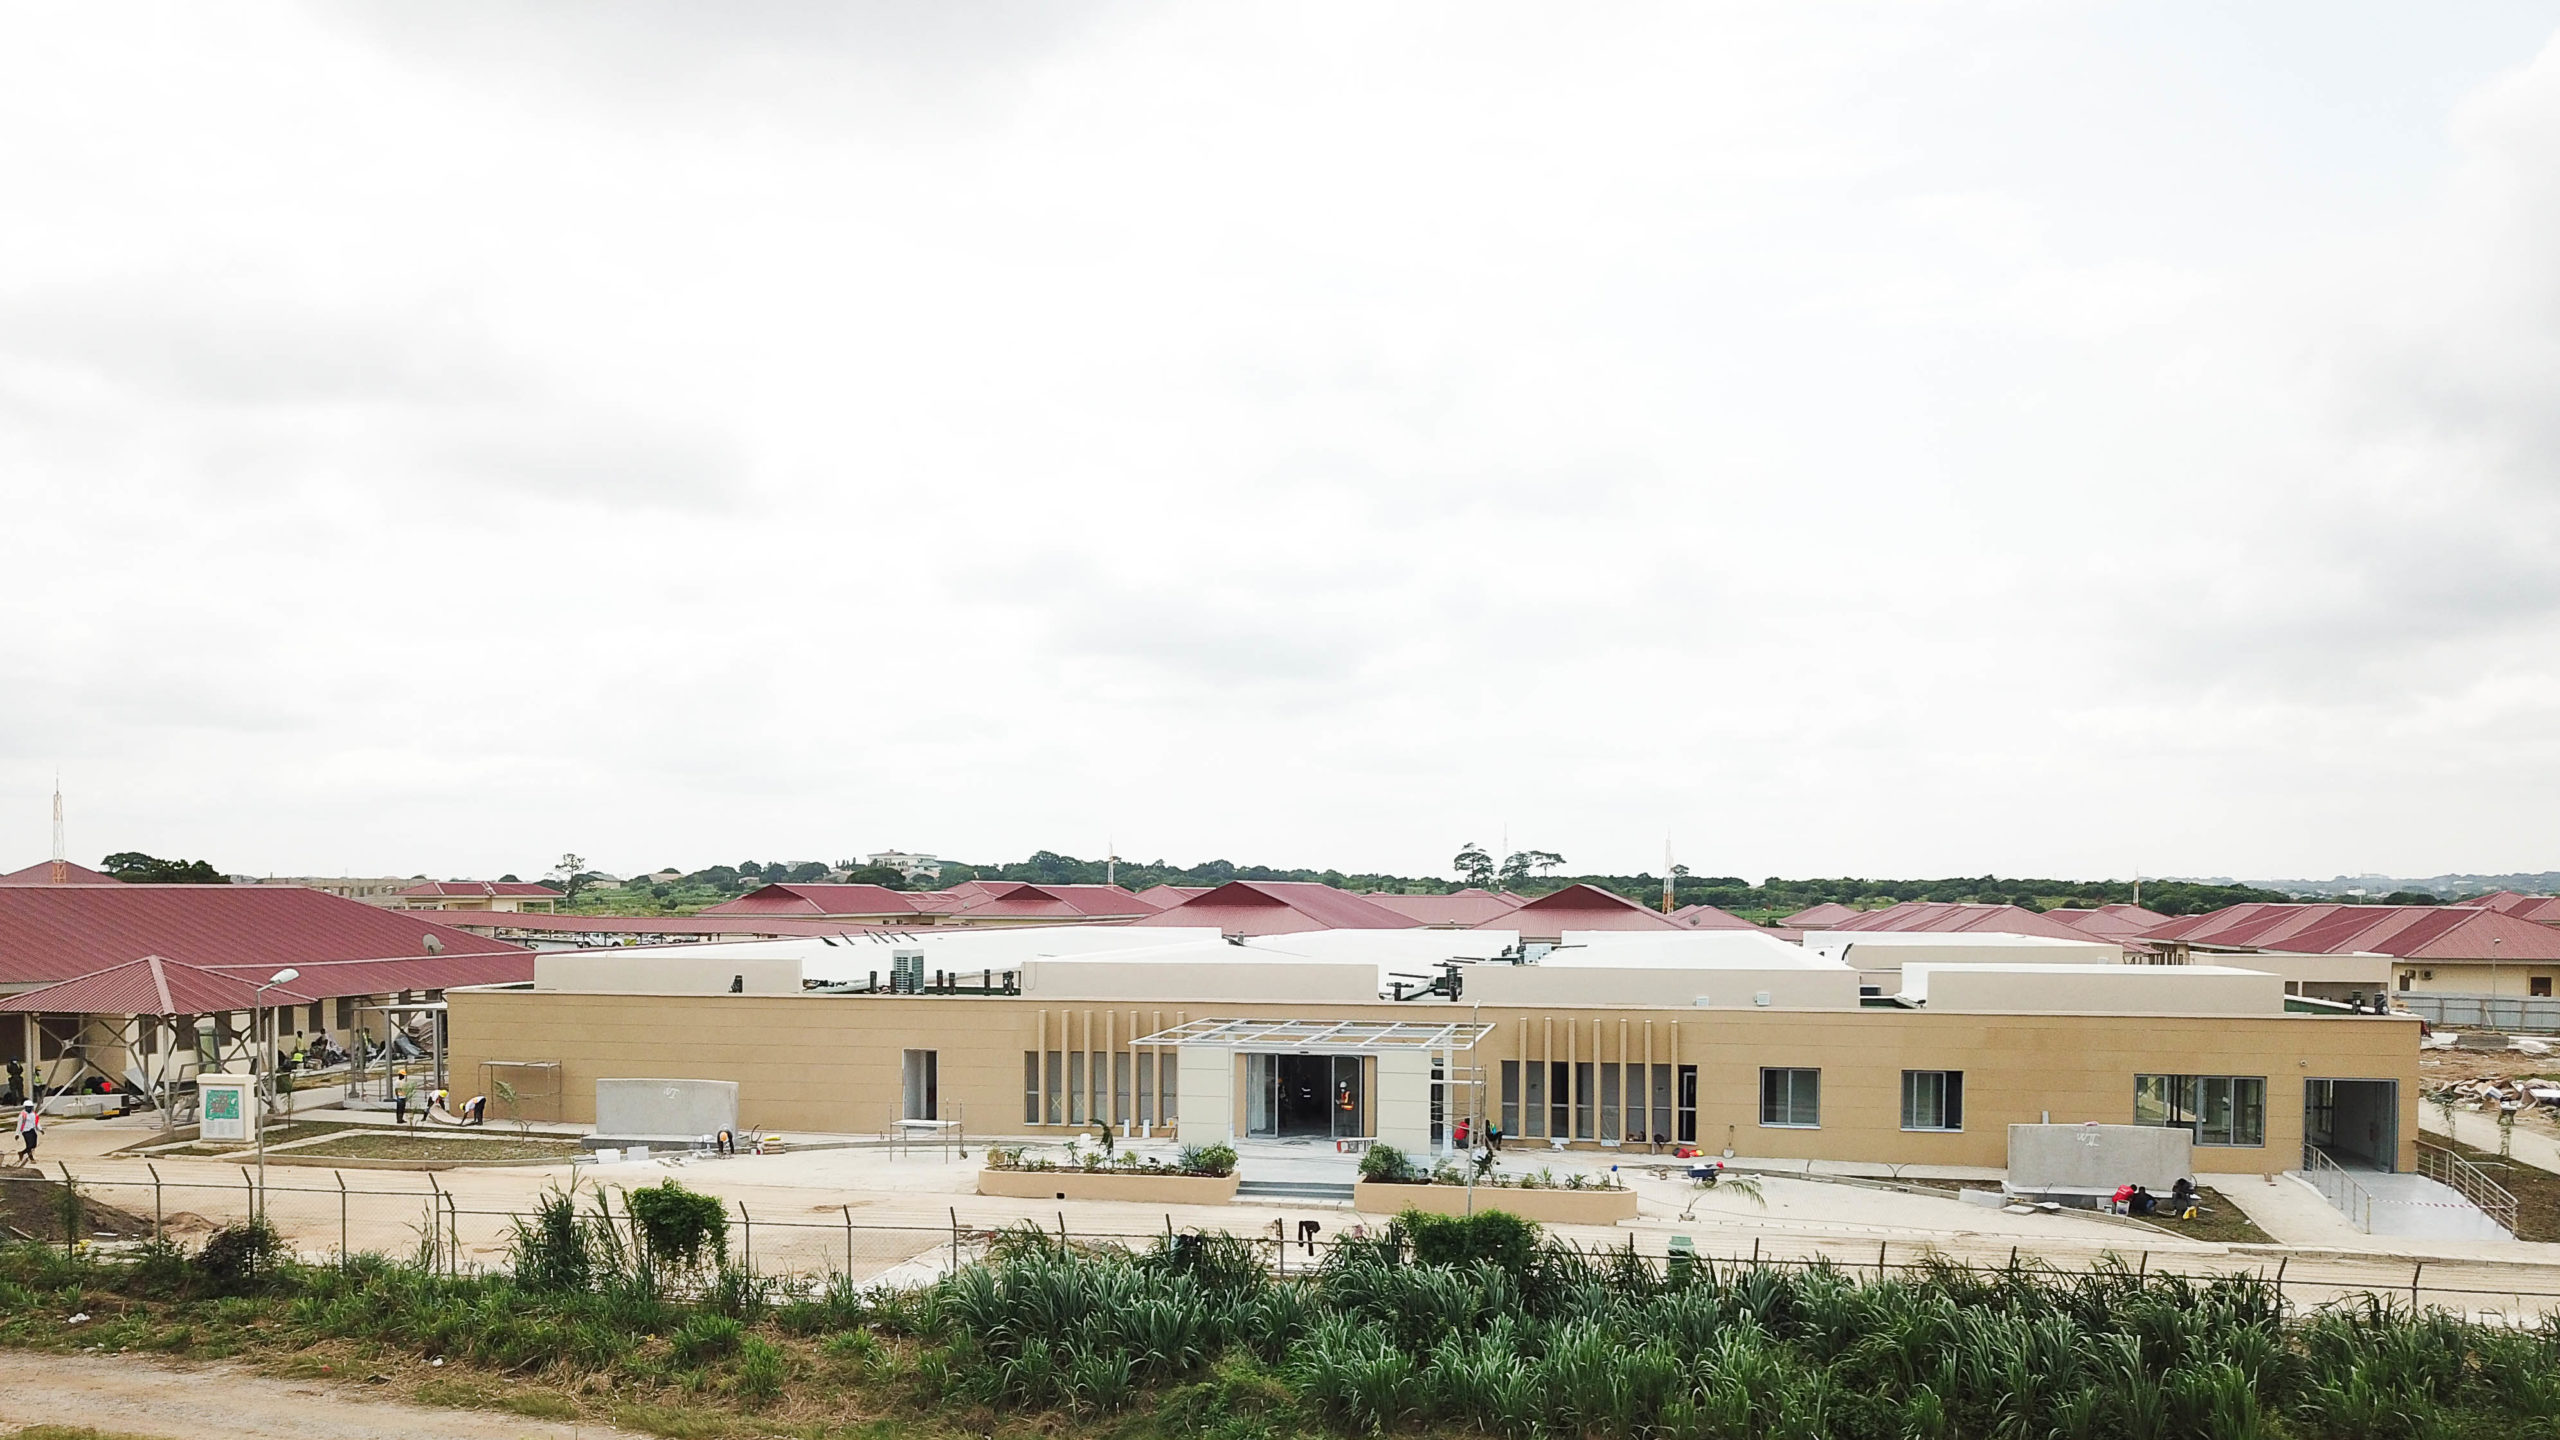 GHANA: Private donors build an infectious disease centre in 3 months